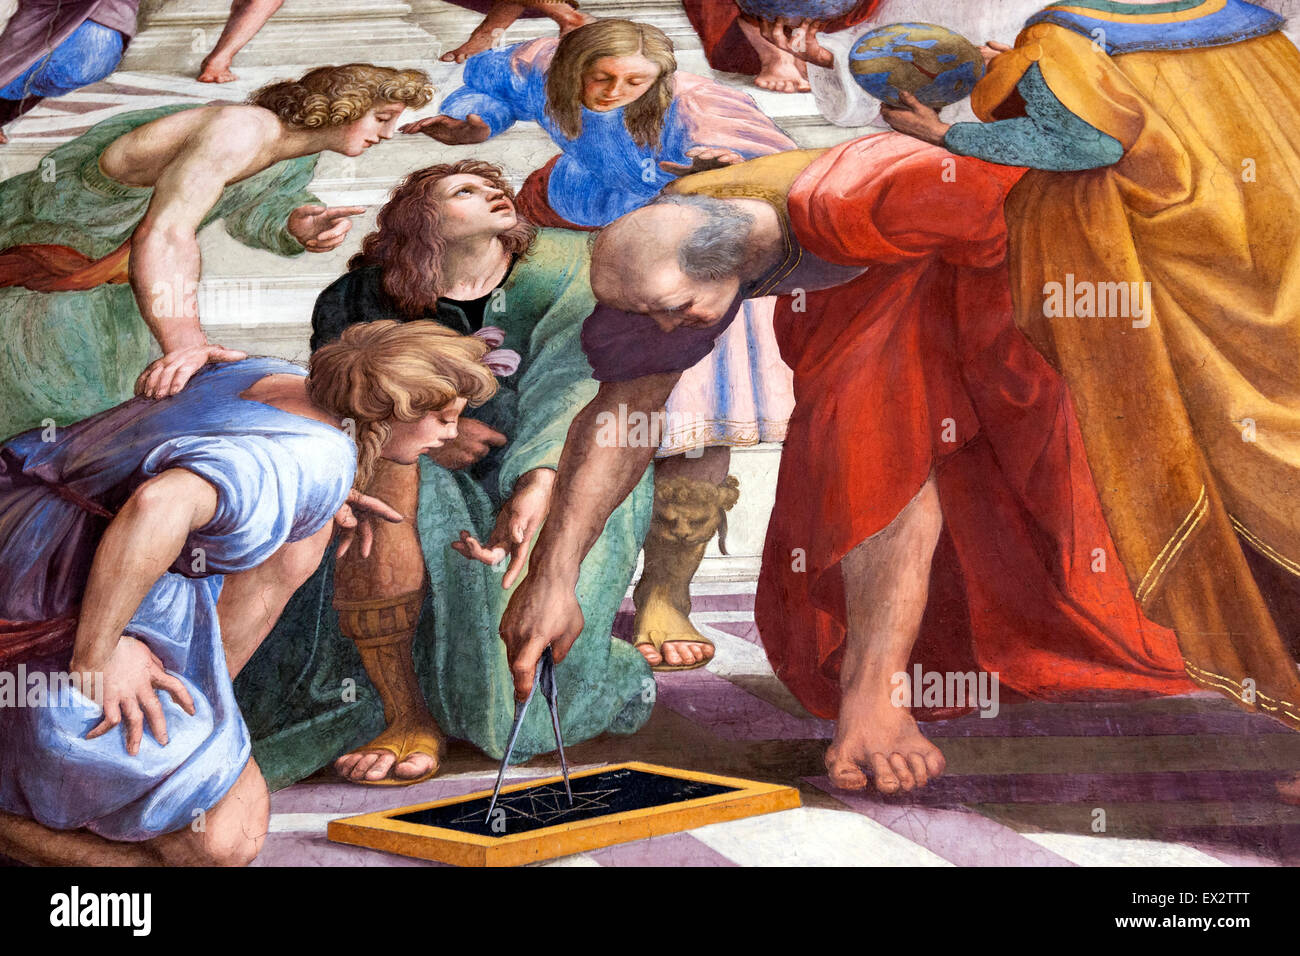 the school of athens by raphael essay Over a year had passed since raphael completed the school of athens, and yet  after viewing the chapel ceiling, raphael went back to the.